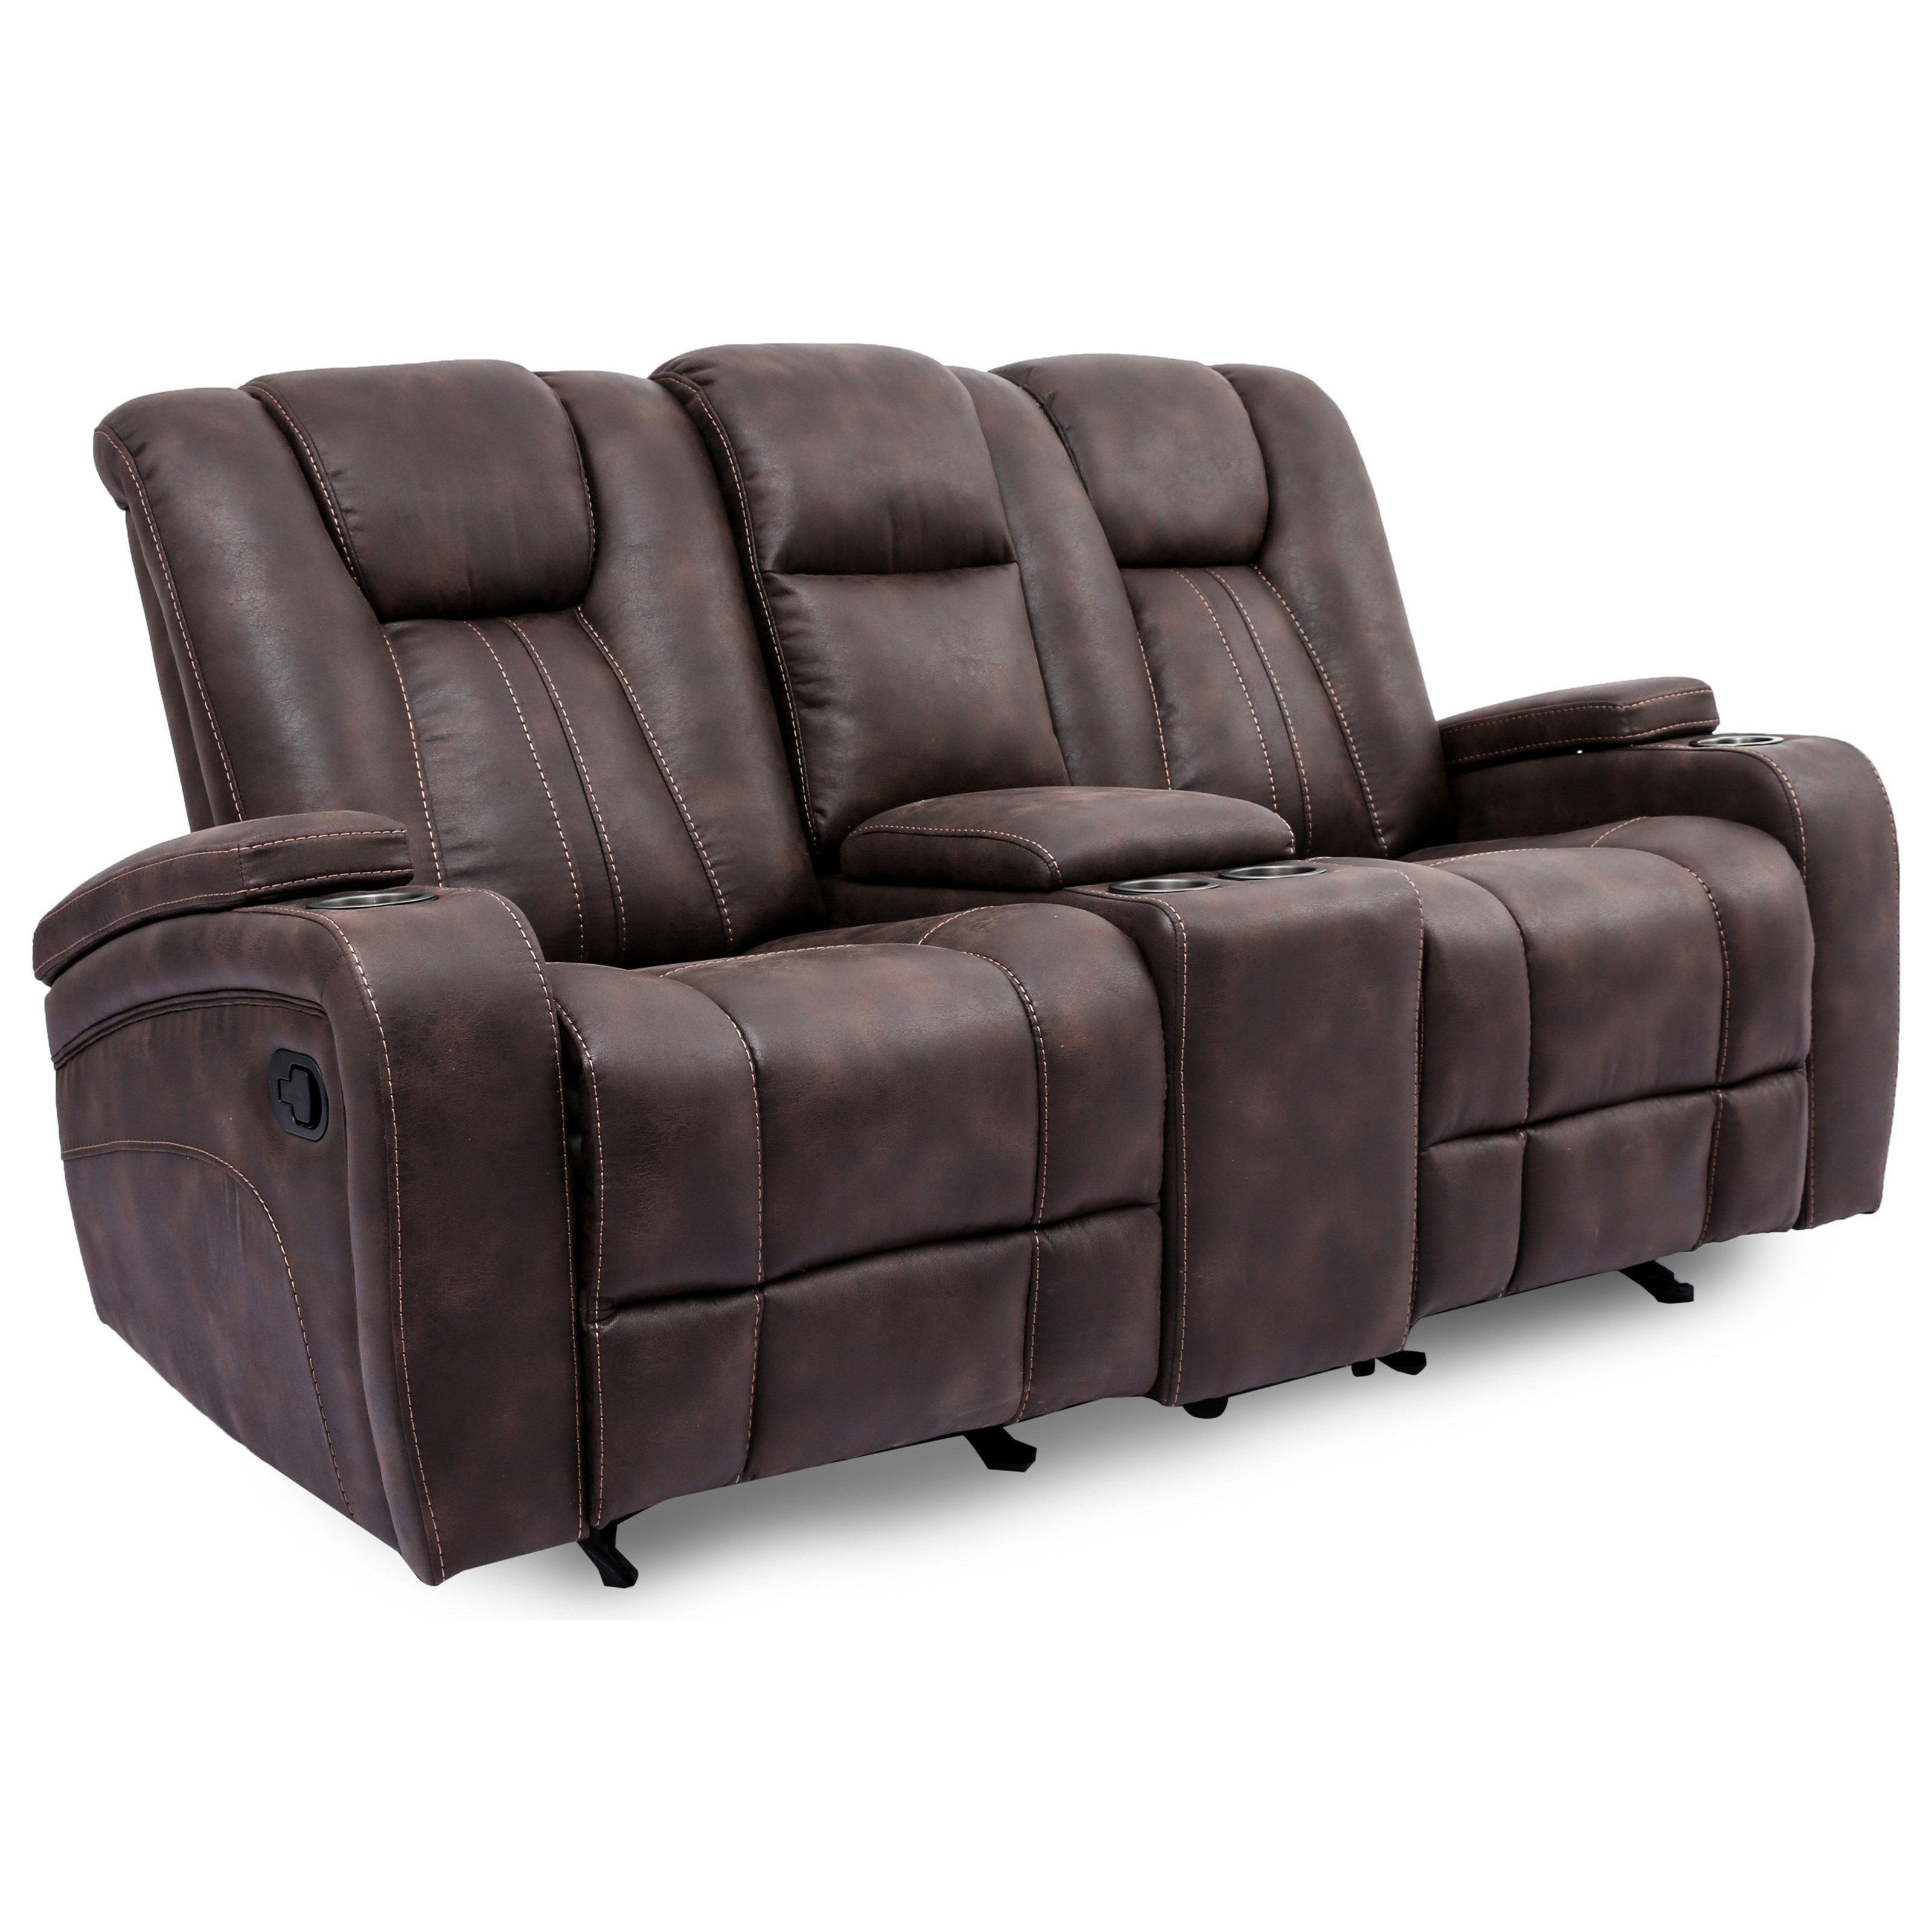 9990M Reclining Loveseat with Console by MW Classics at Miller Waldrop Furniture and Decor